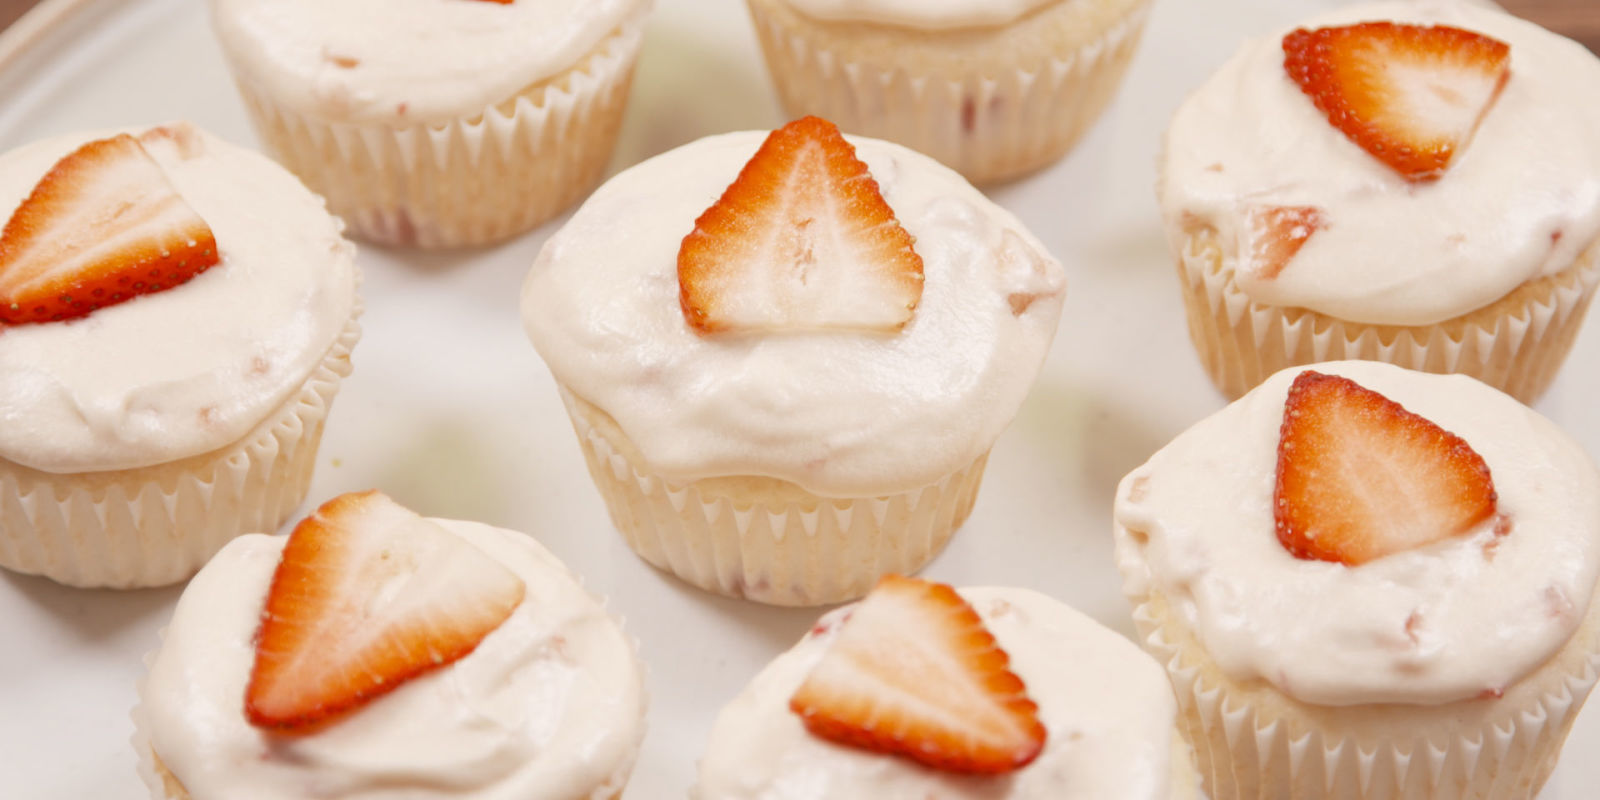 ... and Champagne Cupcakes - Best Cupcake Recipes - Delish.com